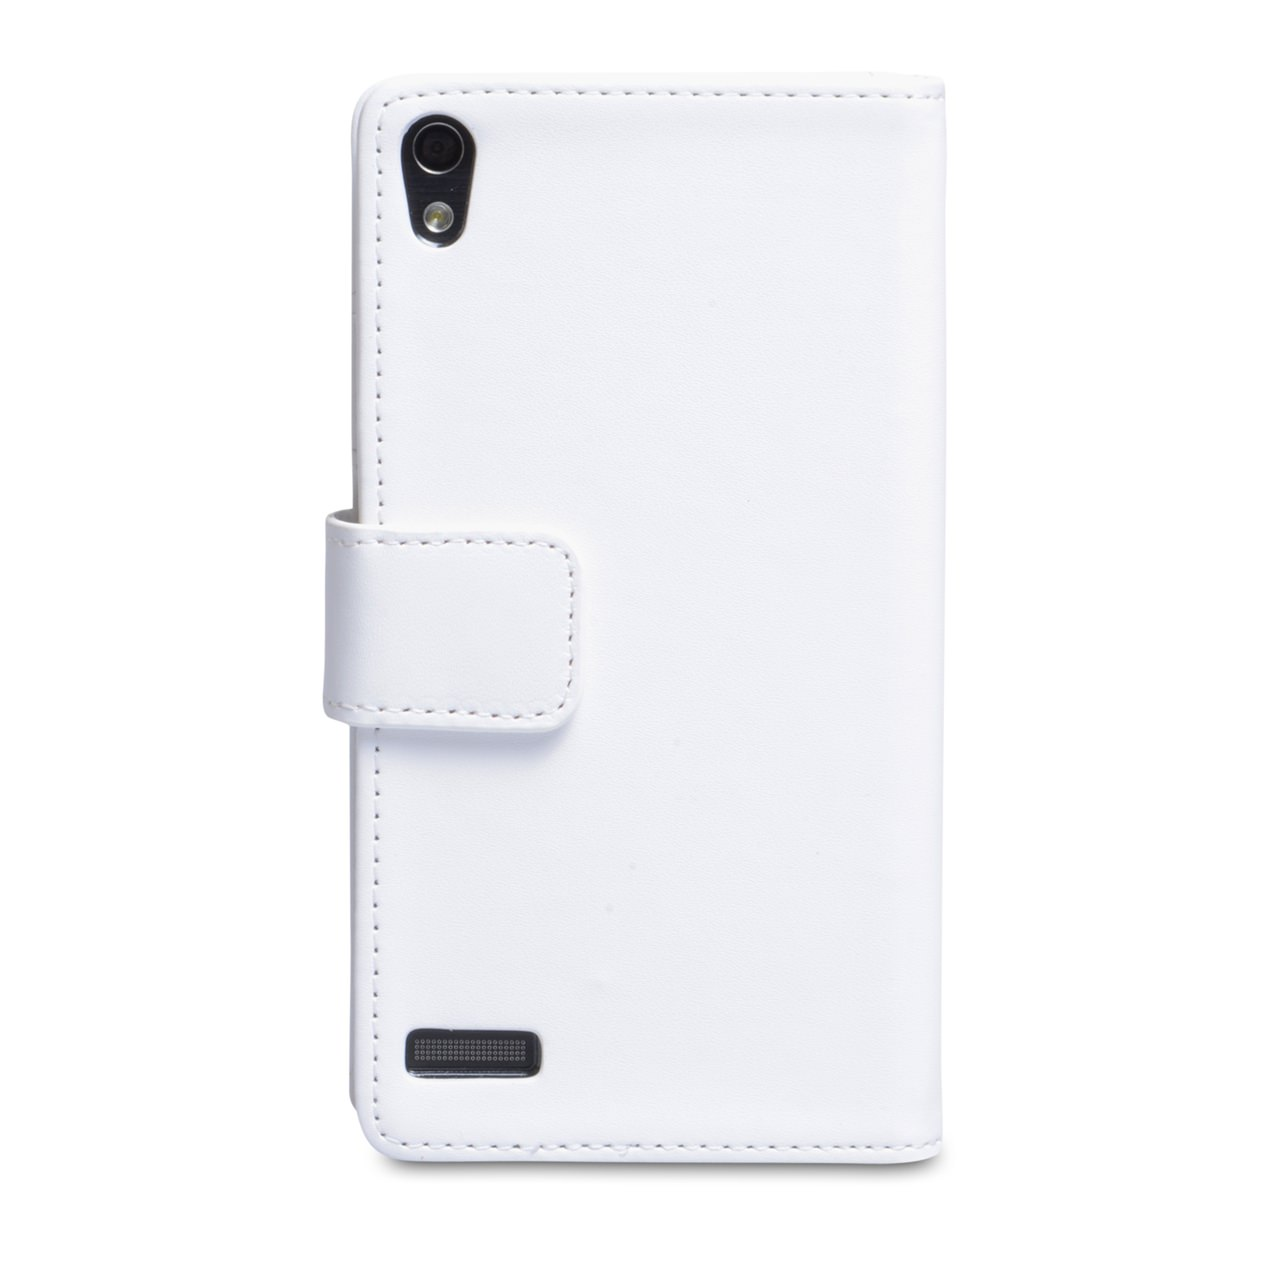 YouSave Huawei Ascend P6 Leather-Effect Wallet Case - White